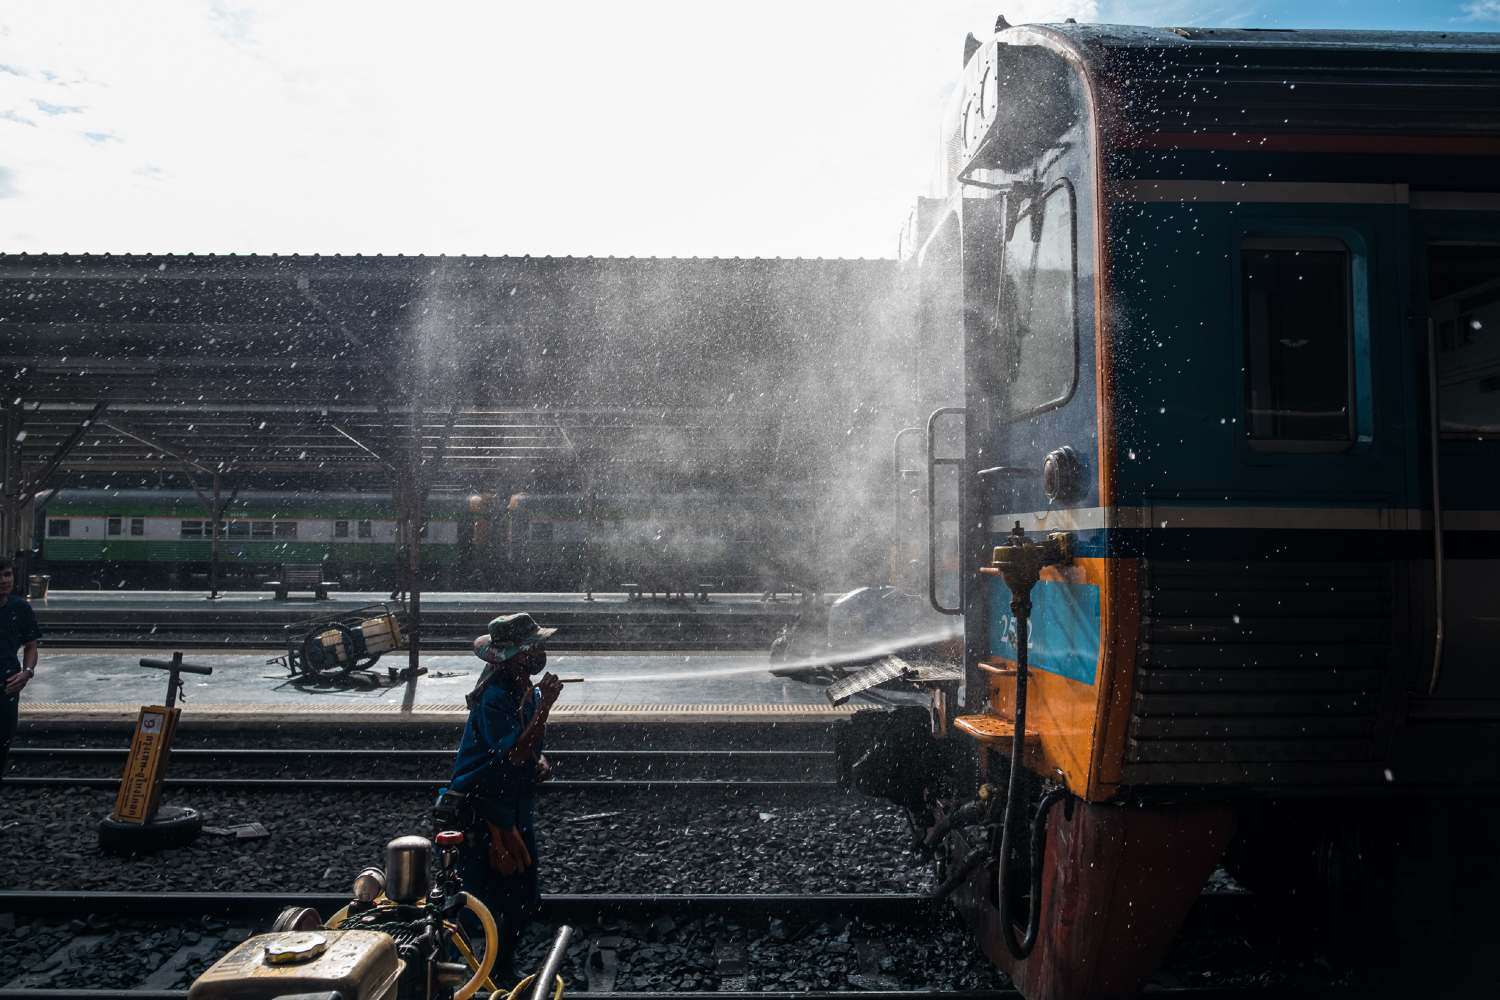 Person cleaning train in Hua Lamphong